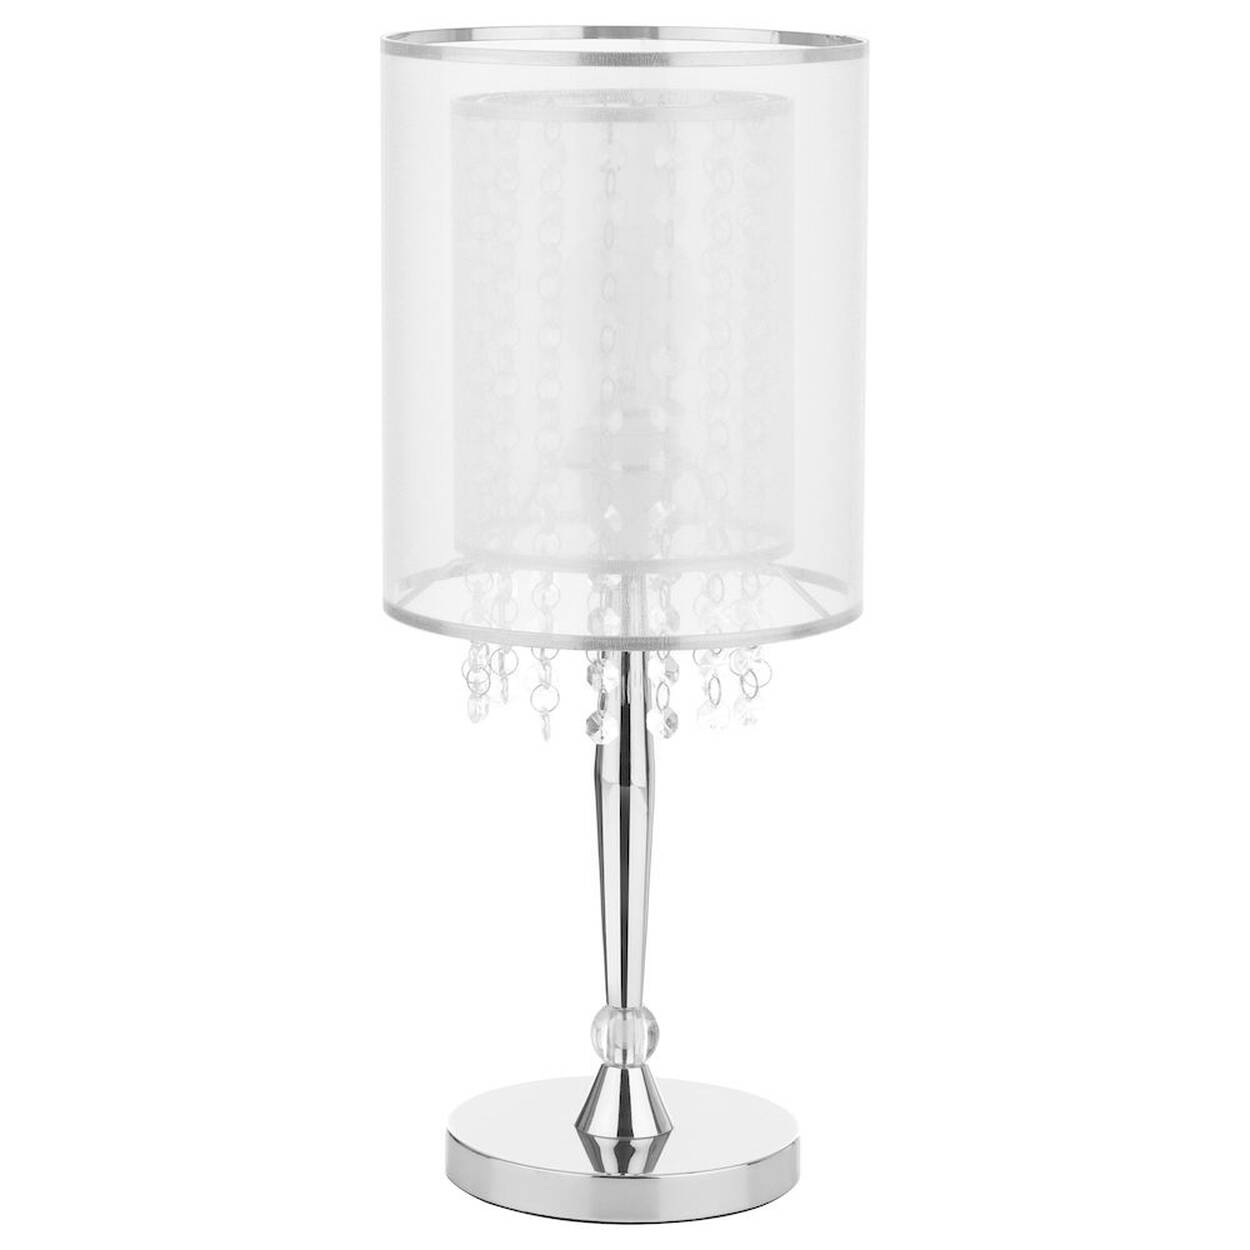 Ribbon and Droplet Table Lamp